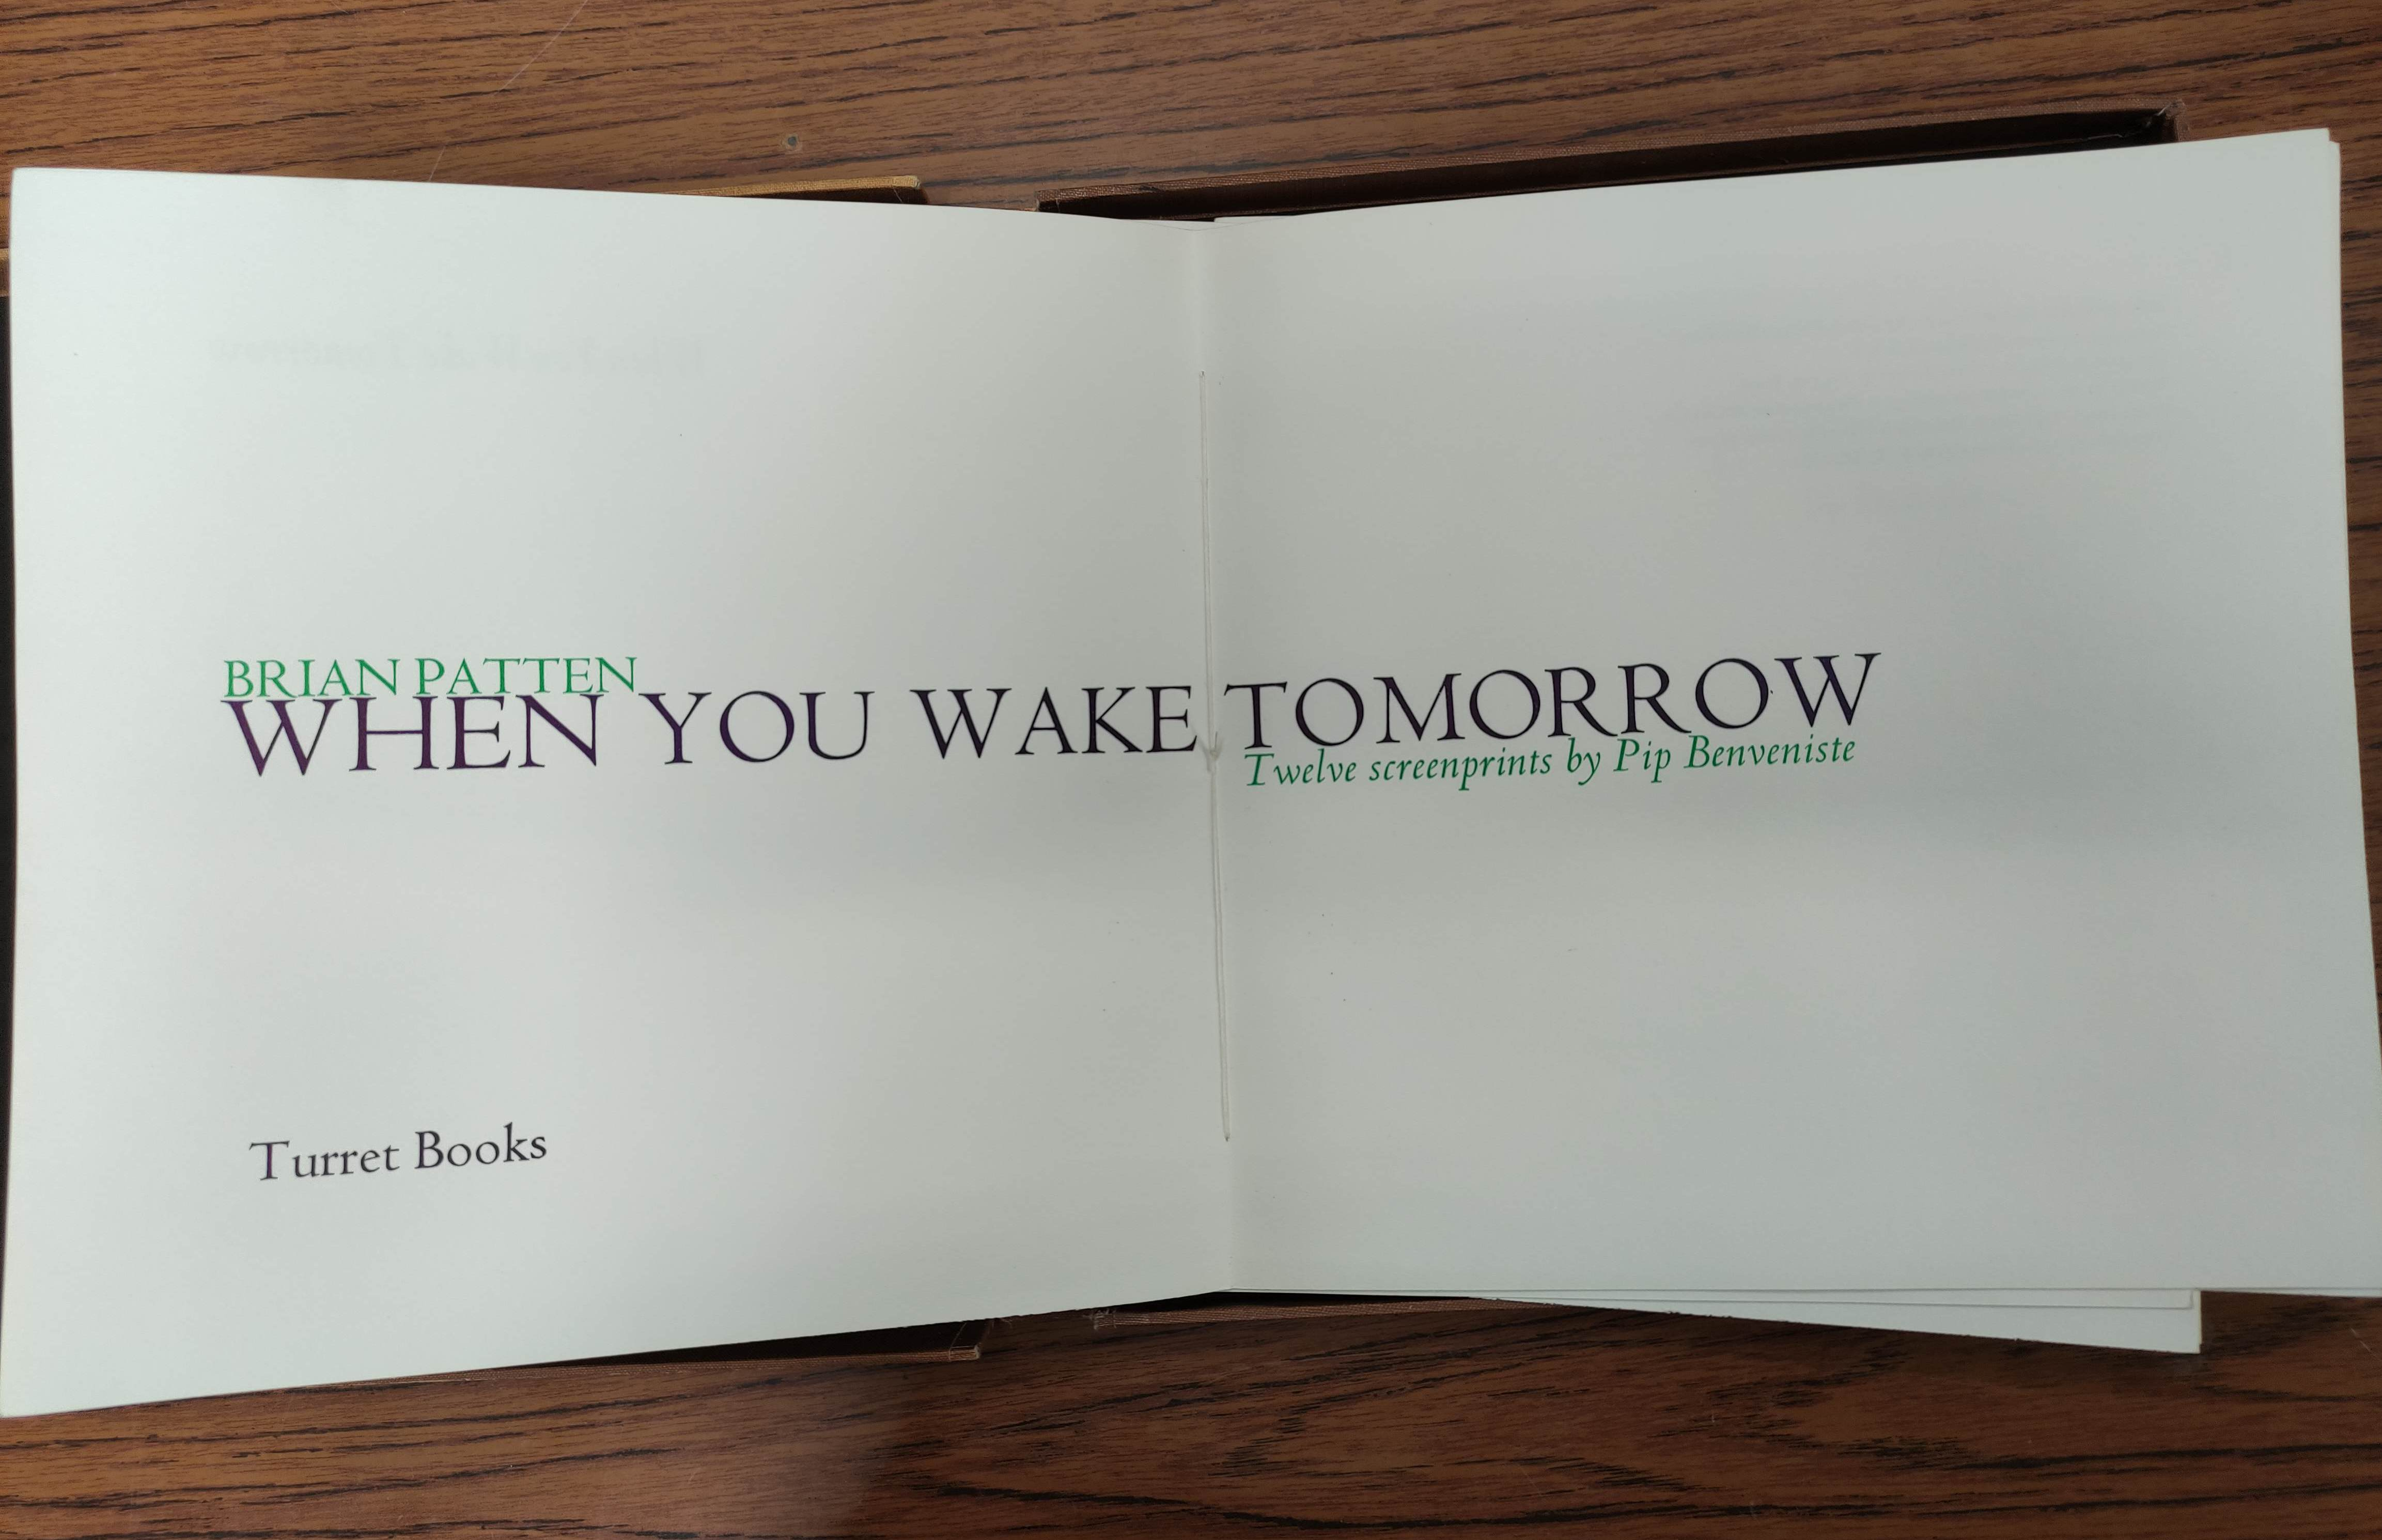 BENVENISTE PIP (Illus).When You Wake Tomorrow by Brian Patten. Ltd. ed. 21/125. Signed by author & - Image 4 of 14